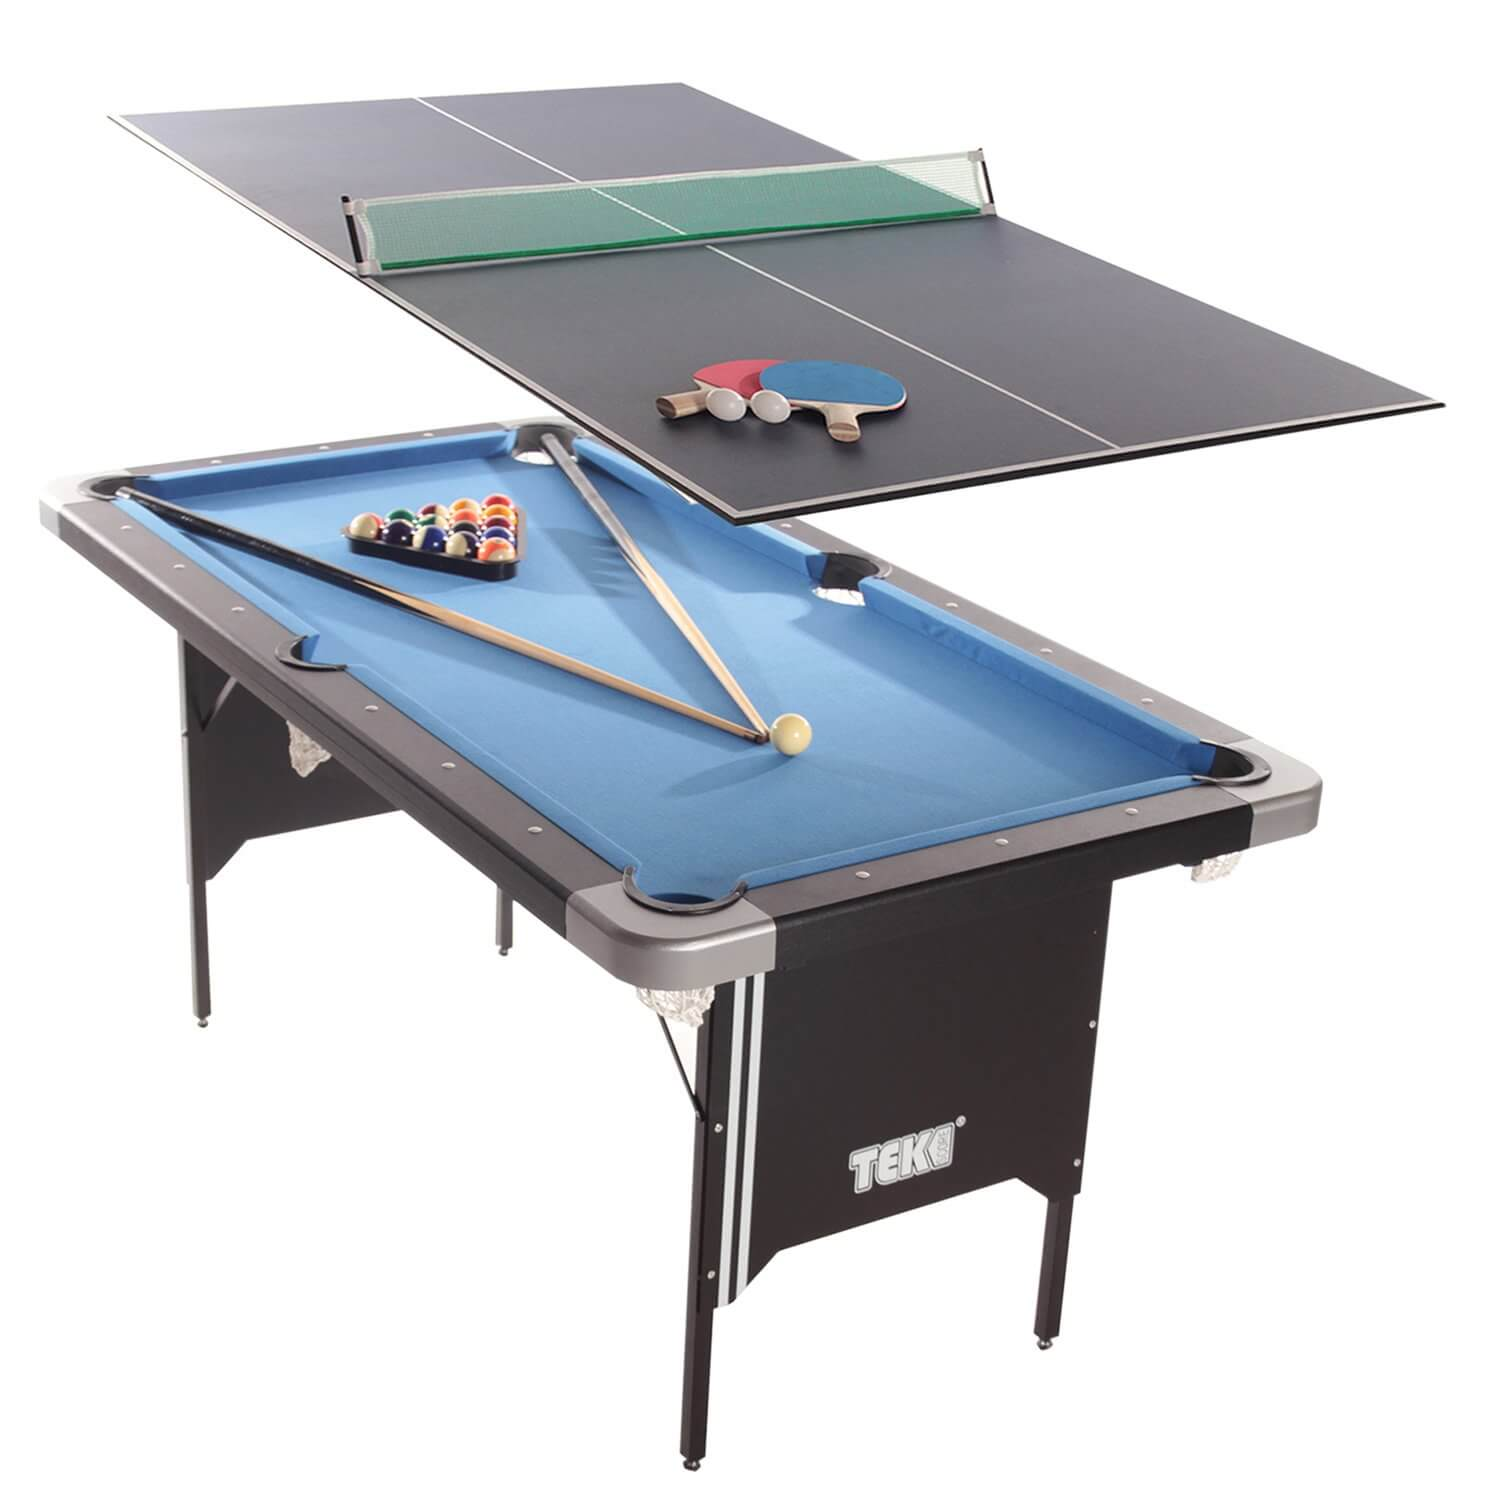 Tekscore Folding Leg Pool Table With Table Tennis Top